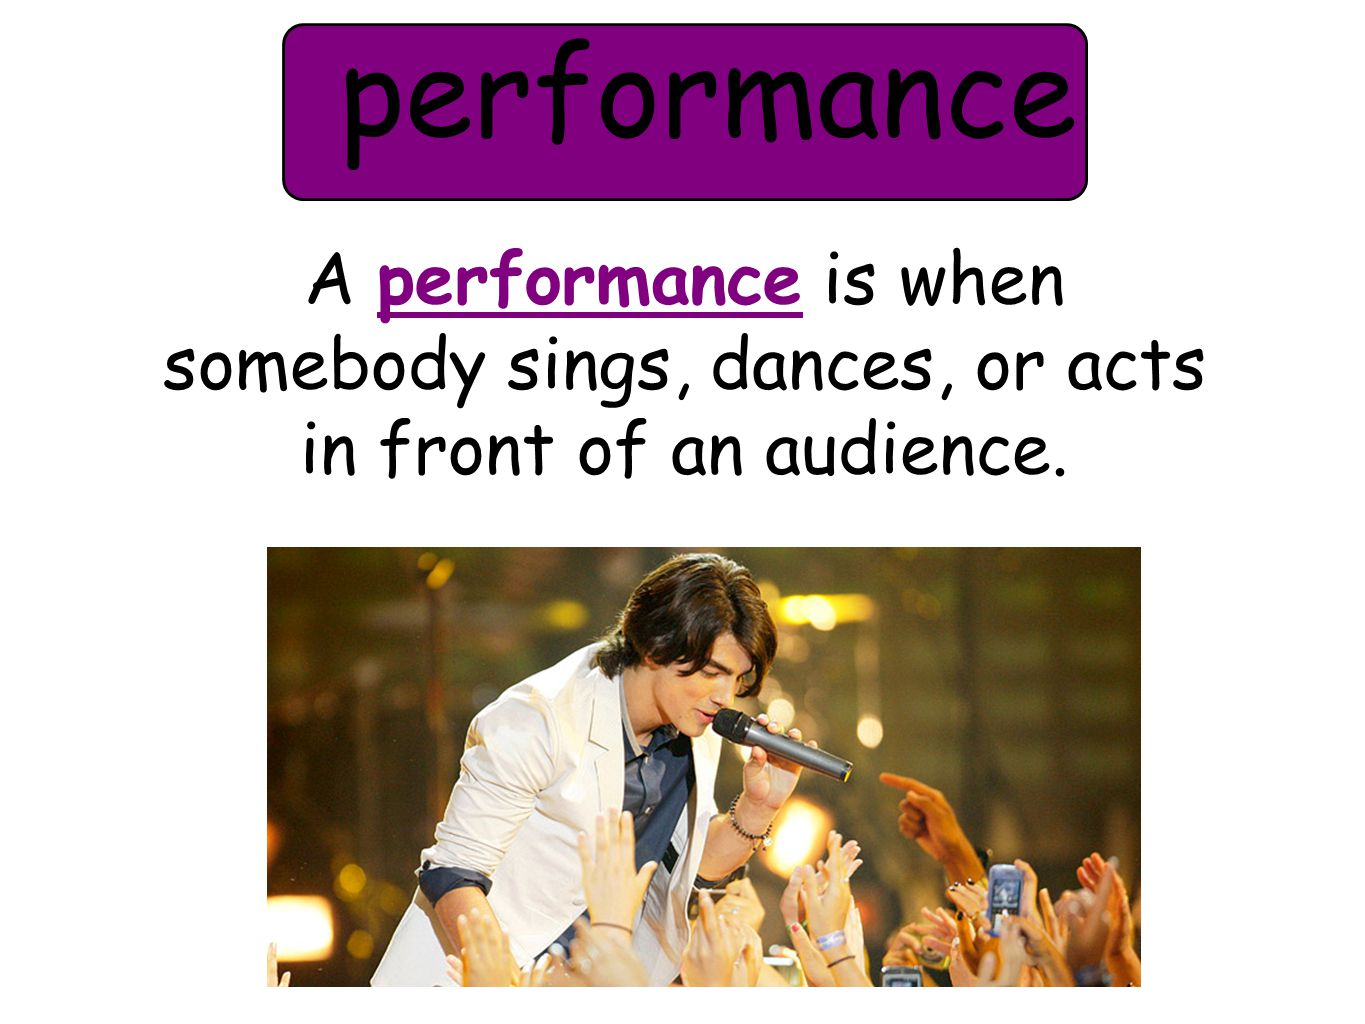 performance A performance is when somebody sings, dances, or acts in front of an audience.